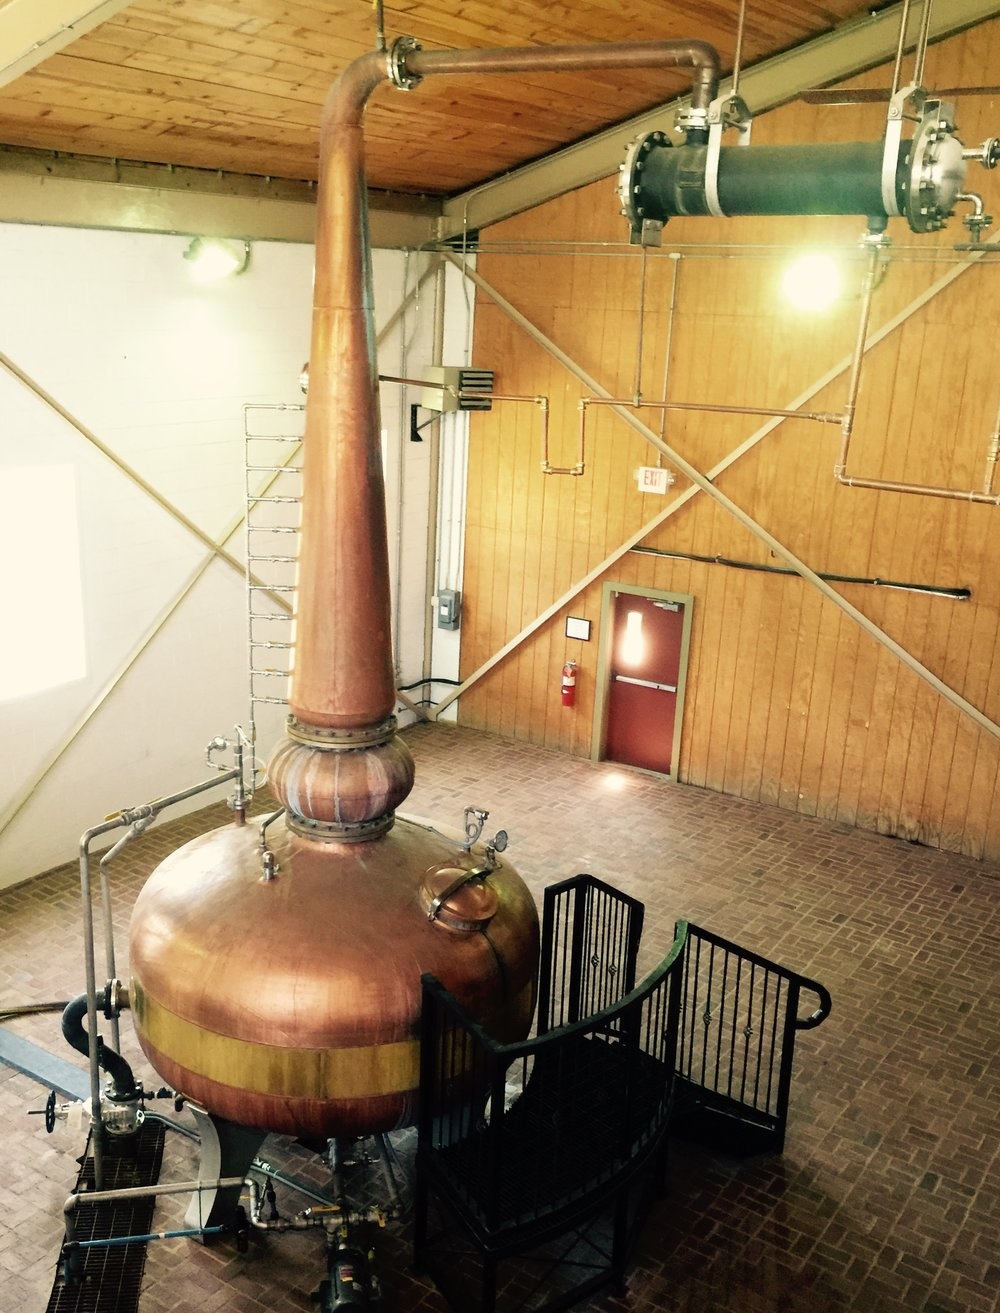 The famous copper pot still at Willett Distillery.  Their Bourbon is packaged in unique bottles that replicate the shape of this iconic still.